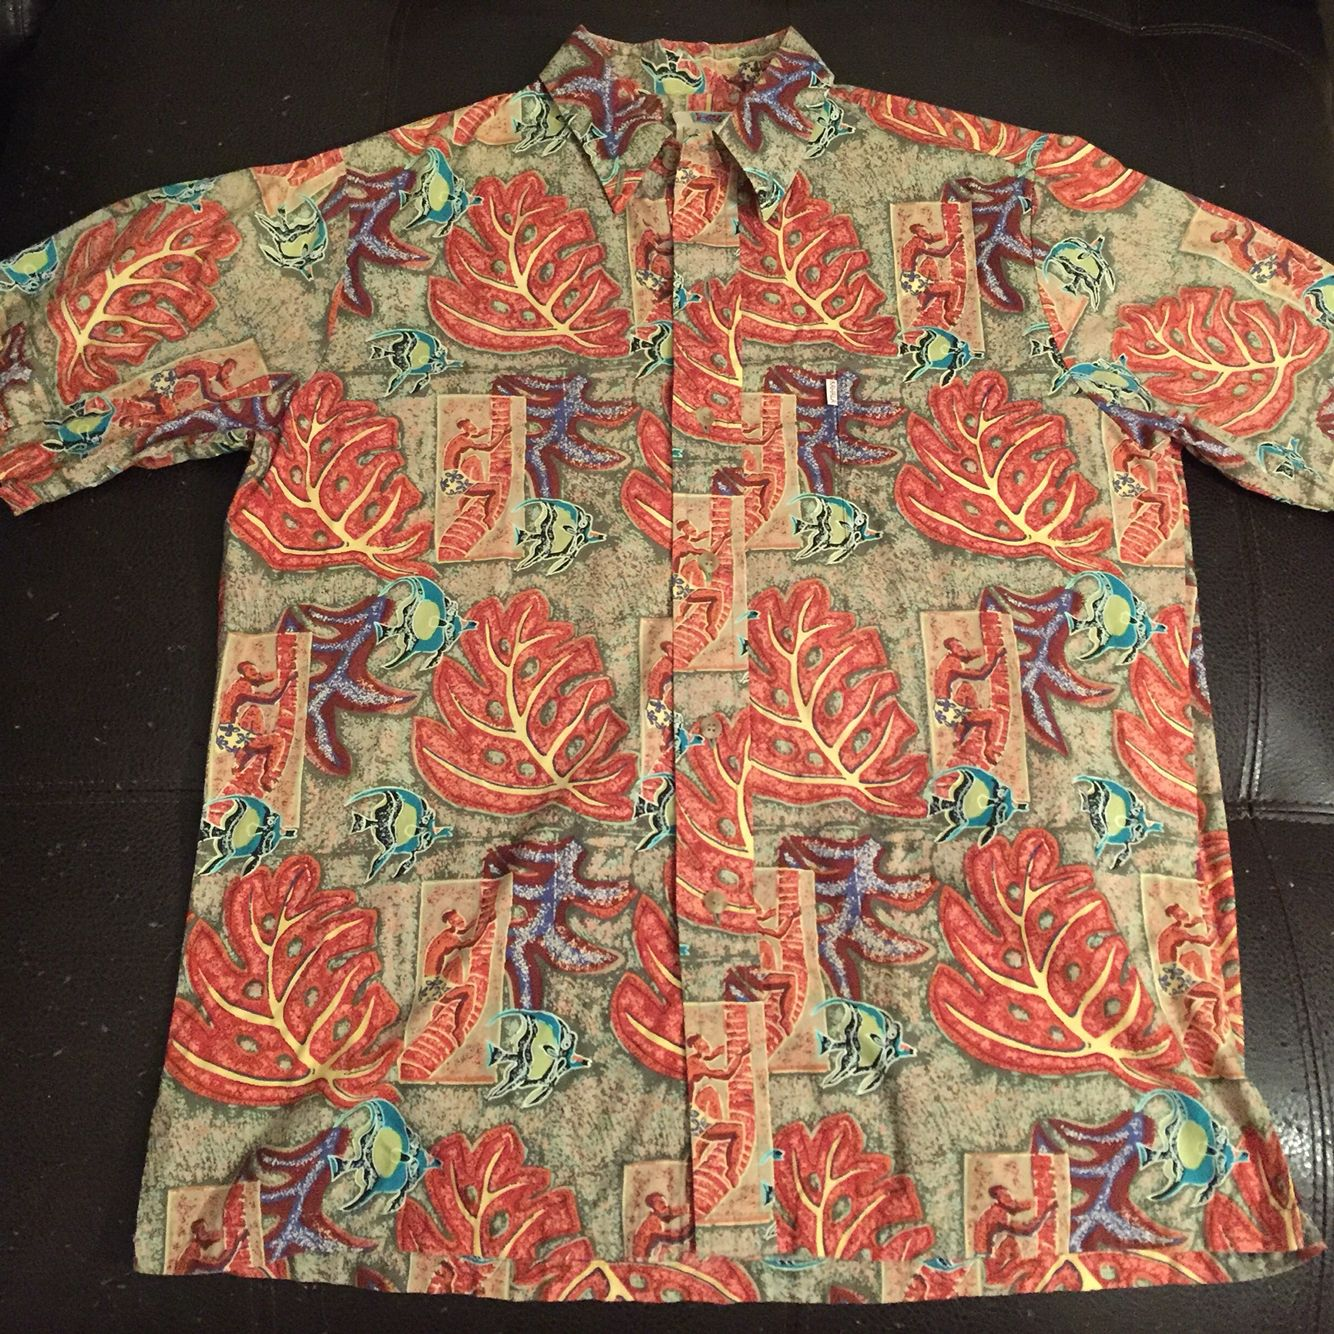 Men's Kahala vintage 80's Hawaiian Shirt #hawaiianshirt #vintagehawaiian #mensvintage #mensfashion